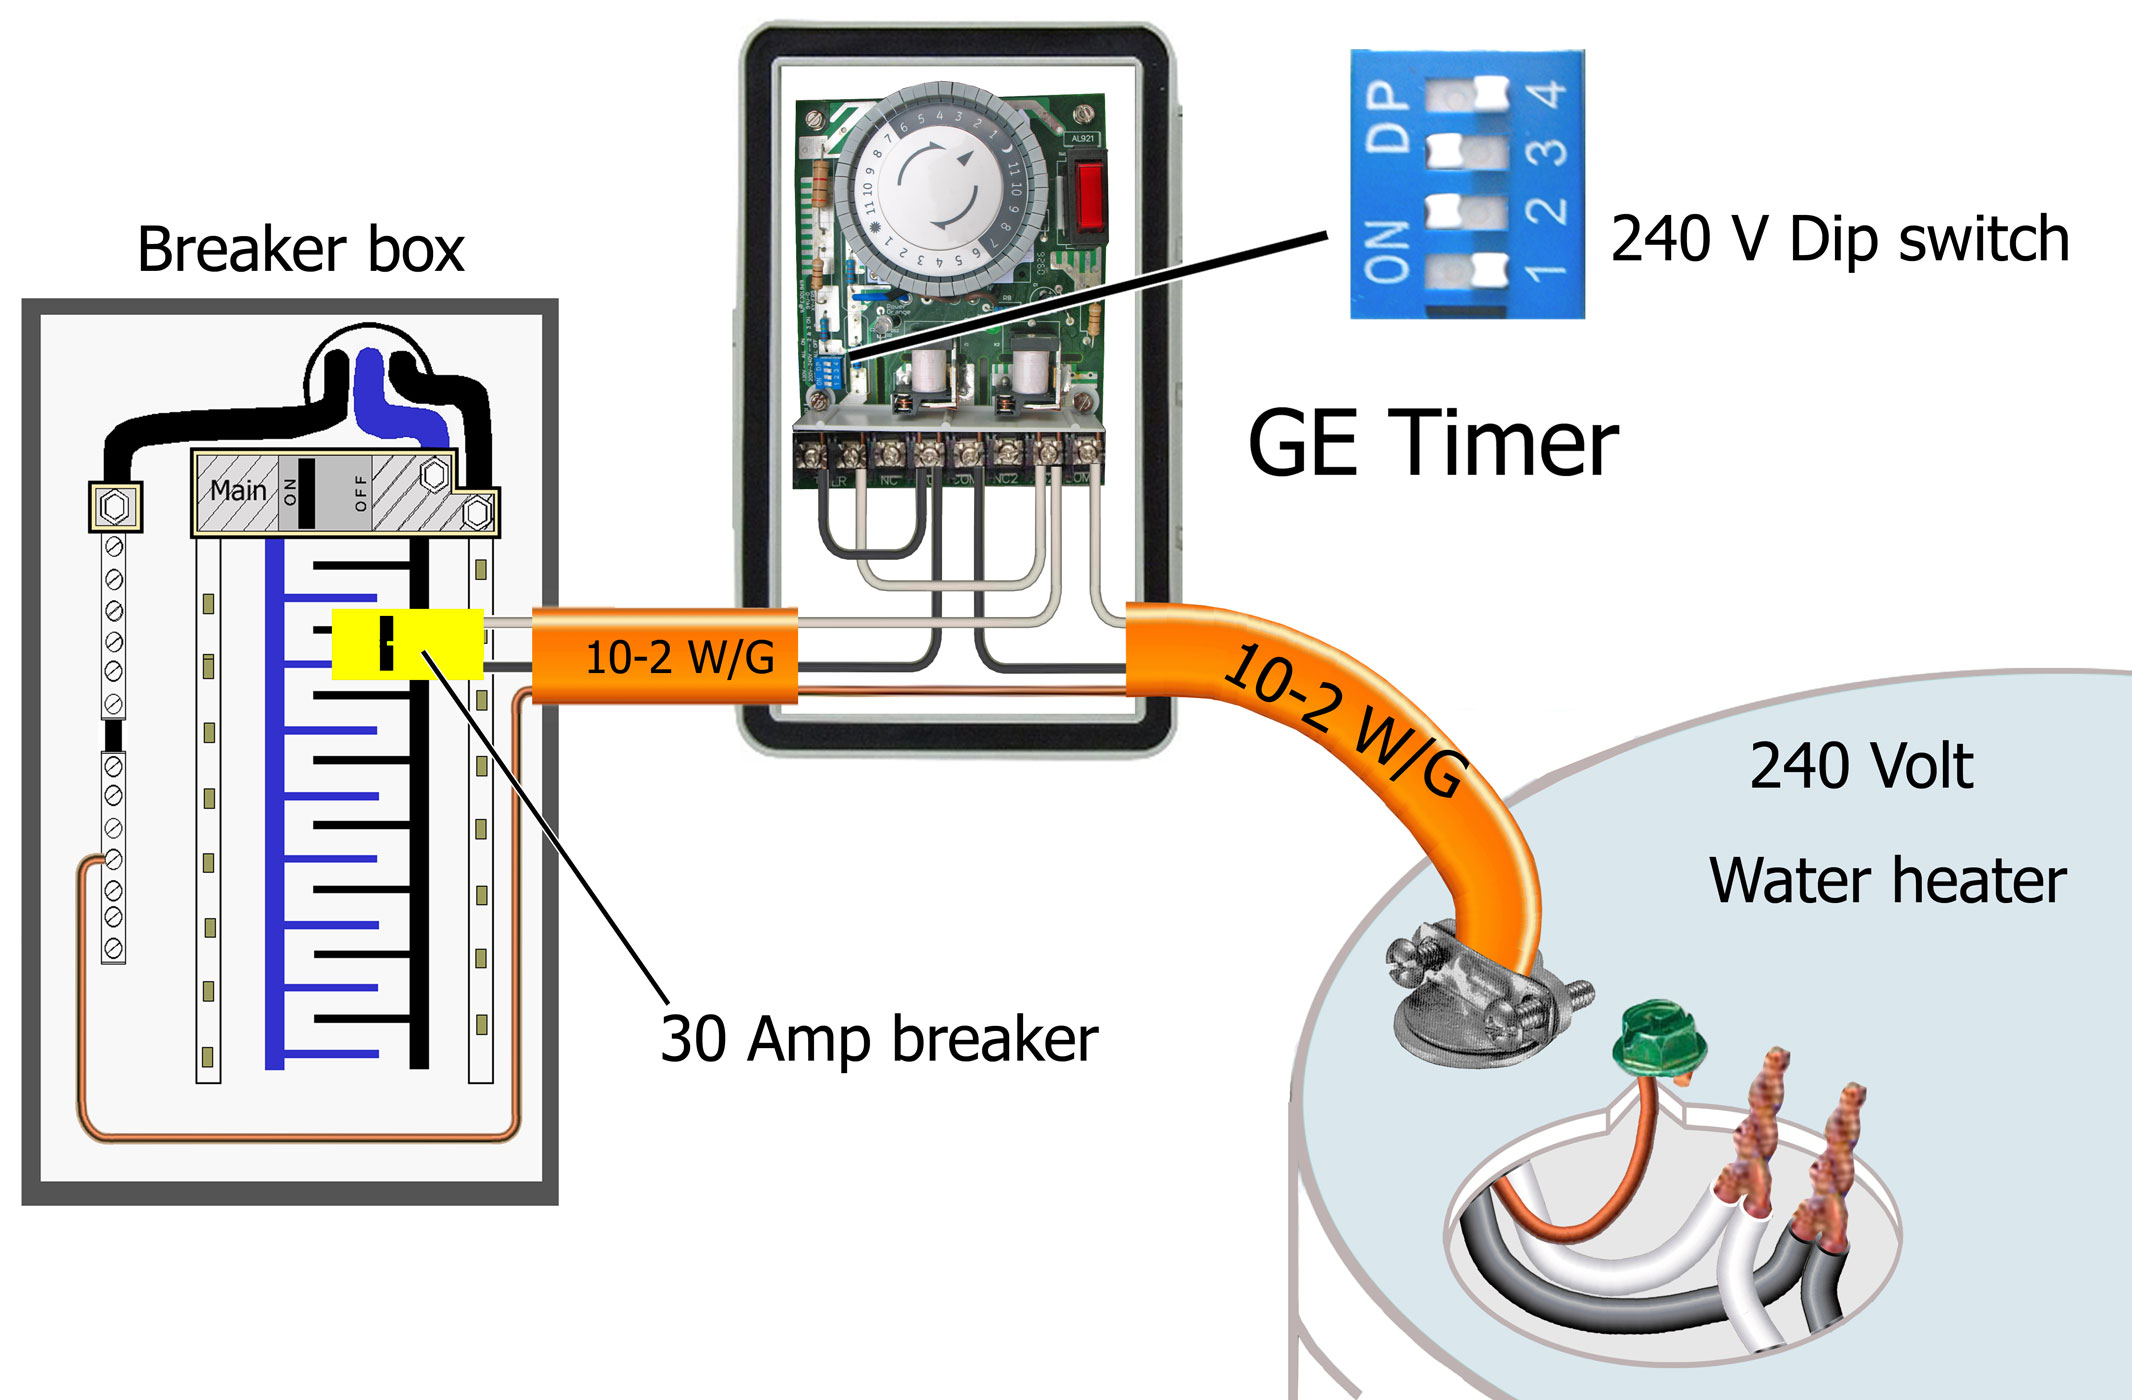 GE to water heater 500 how to wire ge 15207 timer 240 volt hot water heater wiring diagram at soozxer.org